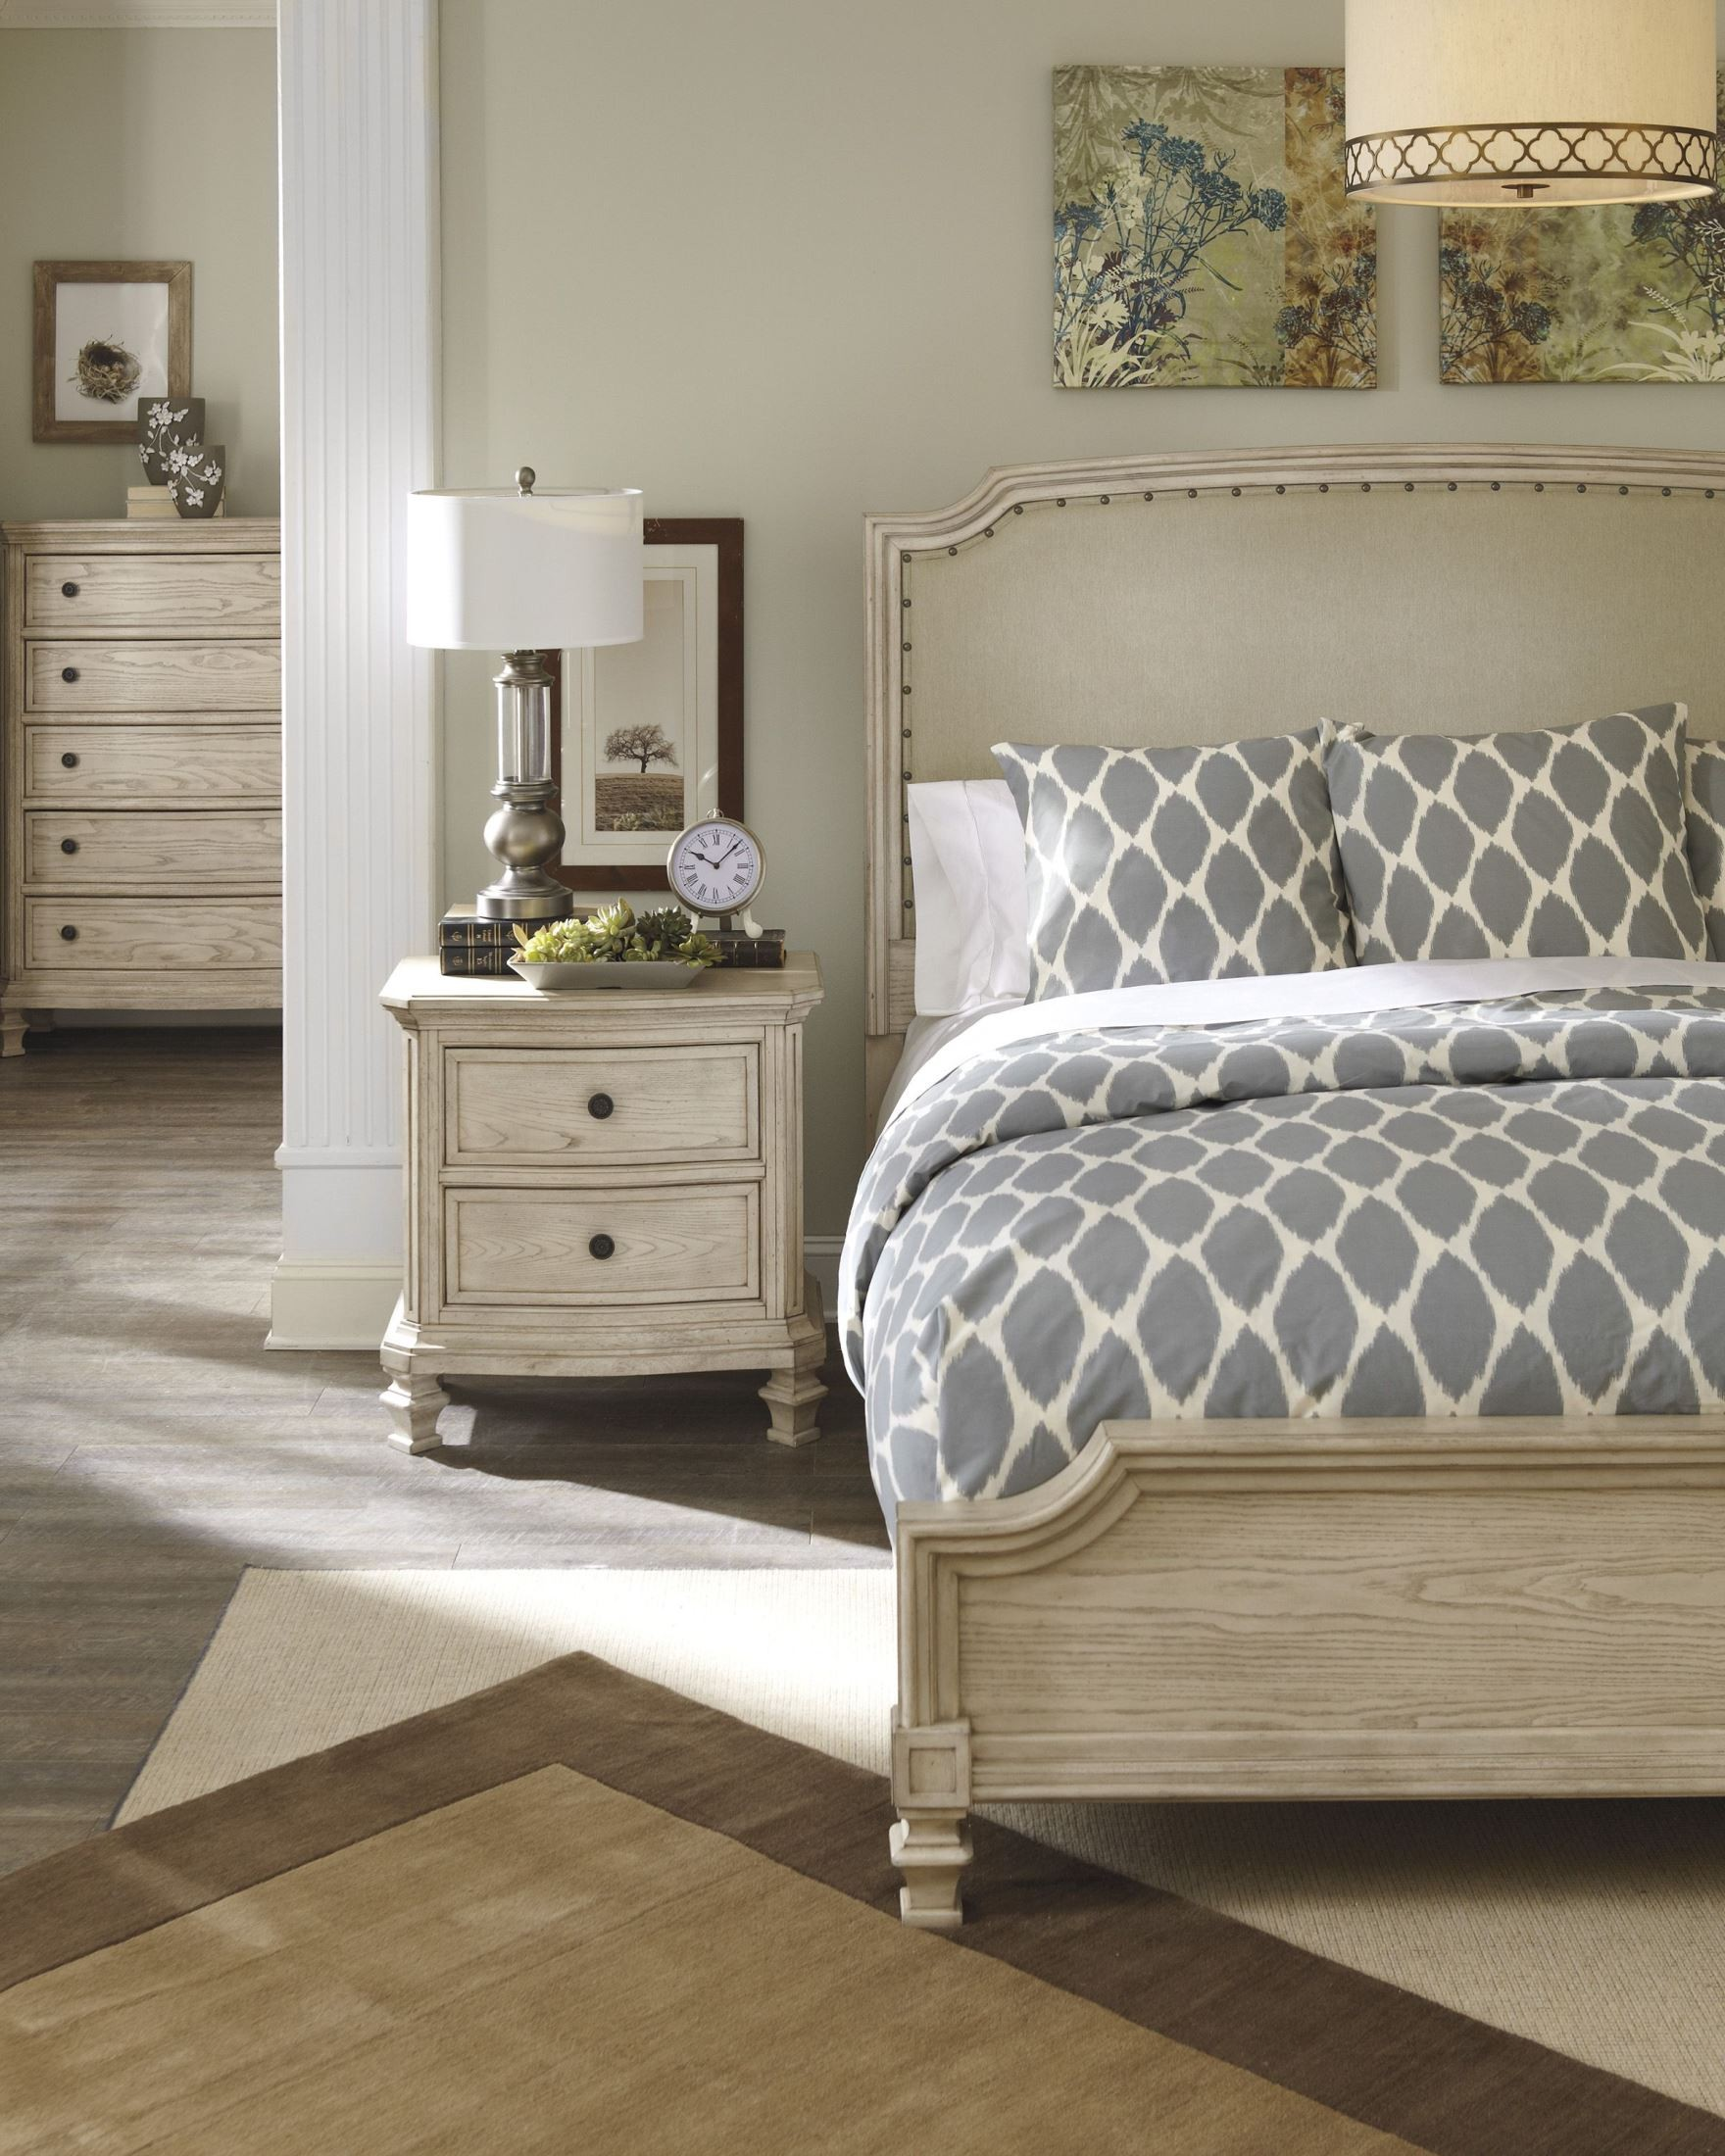 B657 77 Ashley Furniture Queen Upholstered Bed: Furniture & More Demarlos Queen Upholstered